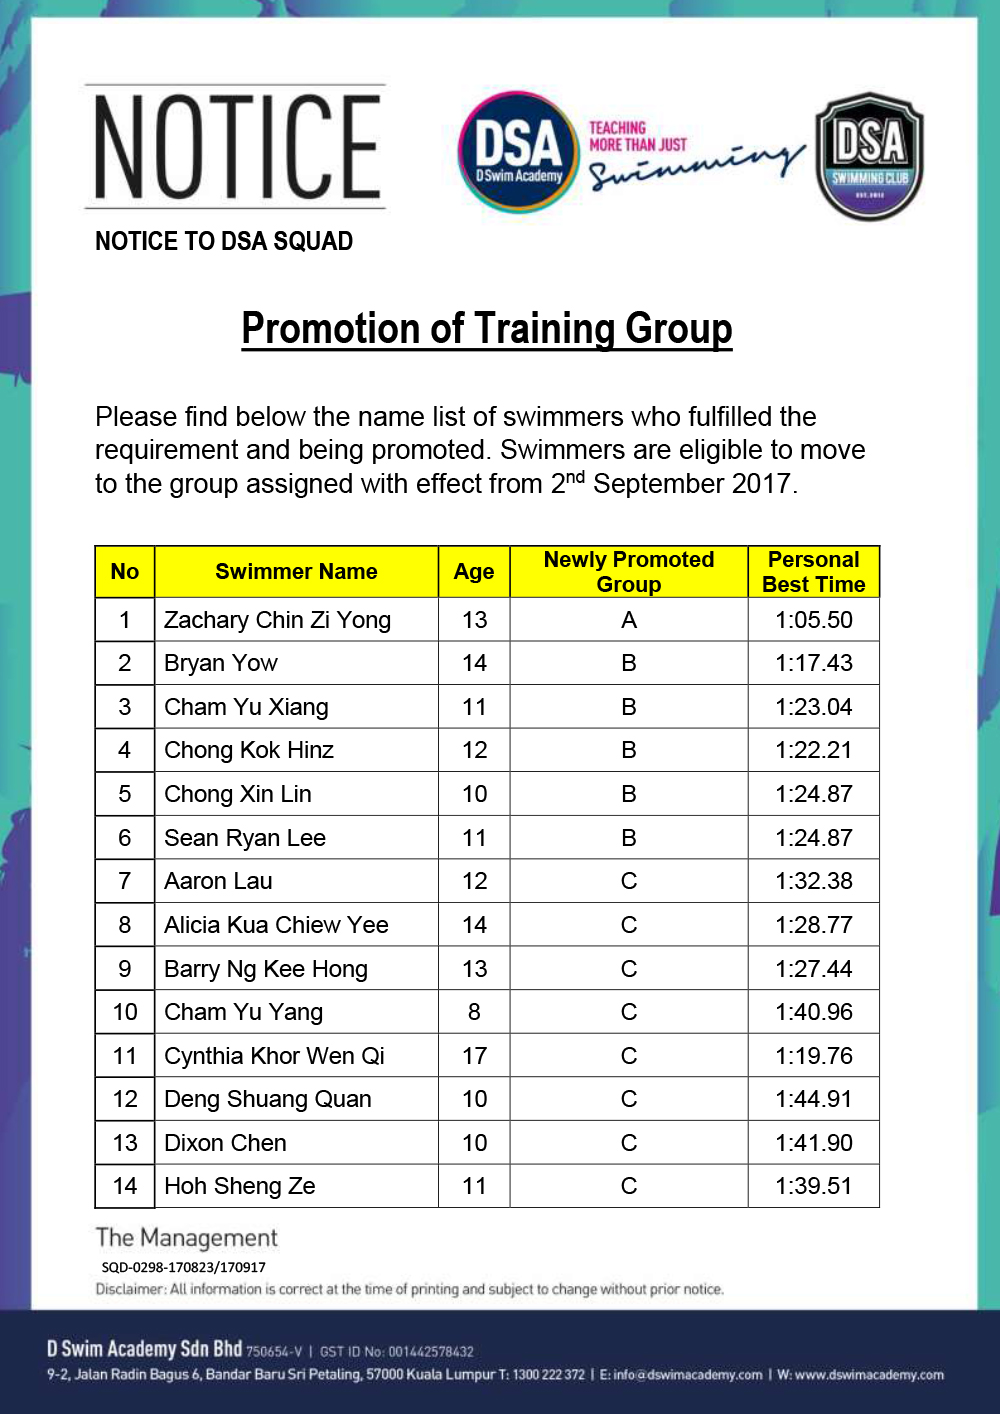 Promotion of Training Groups